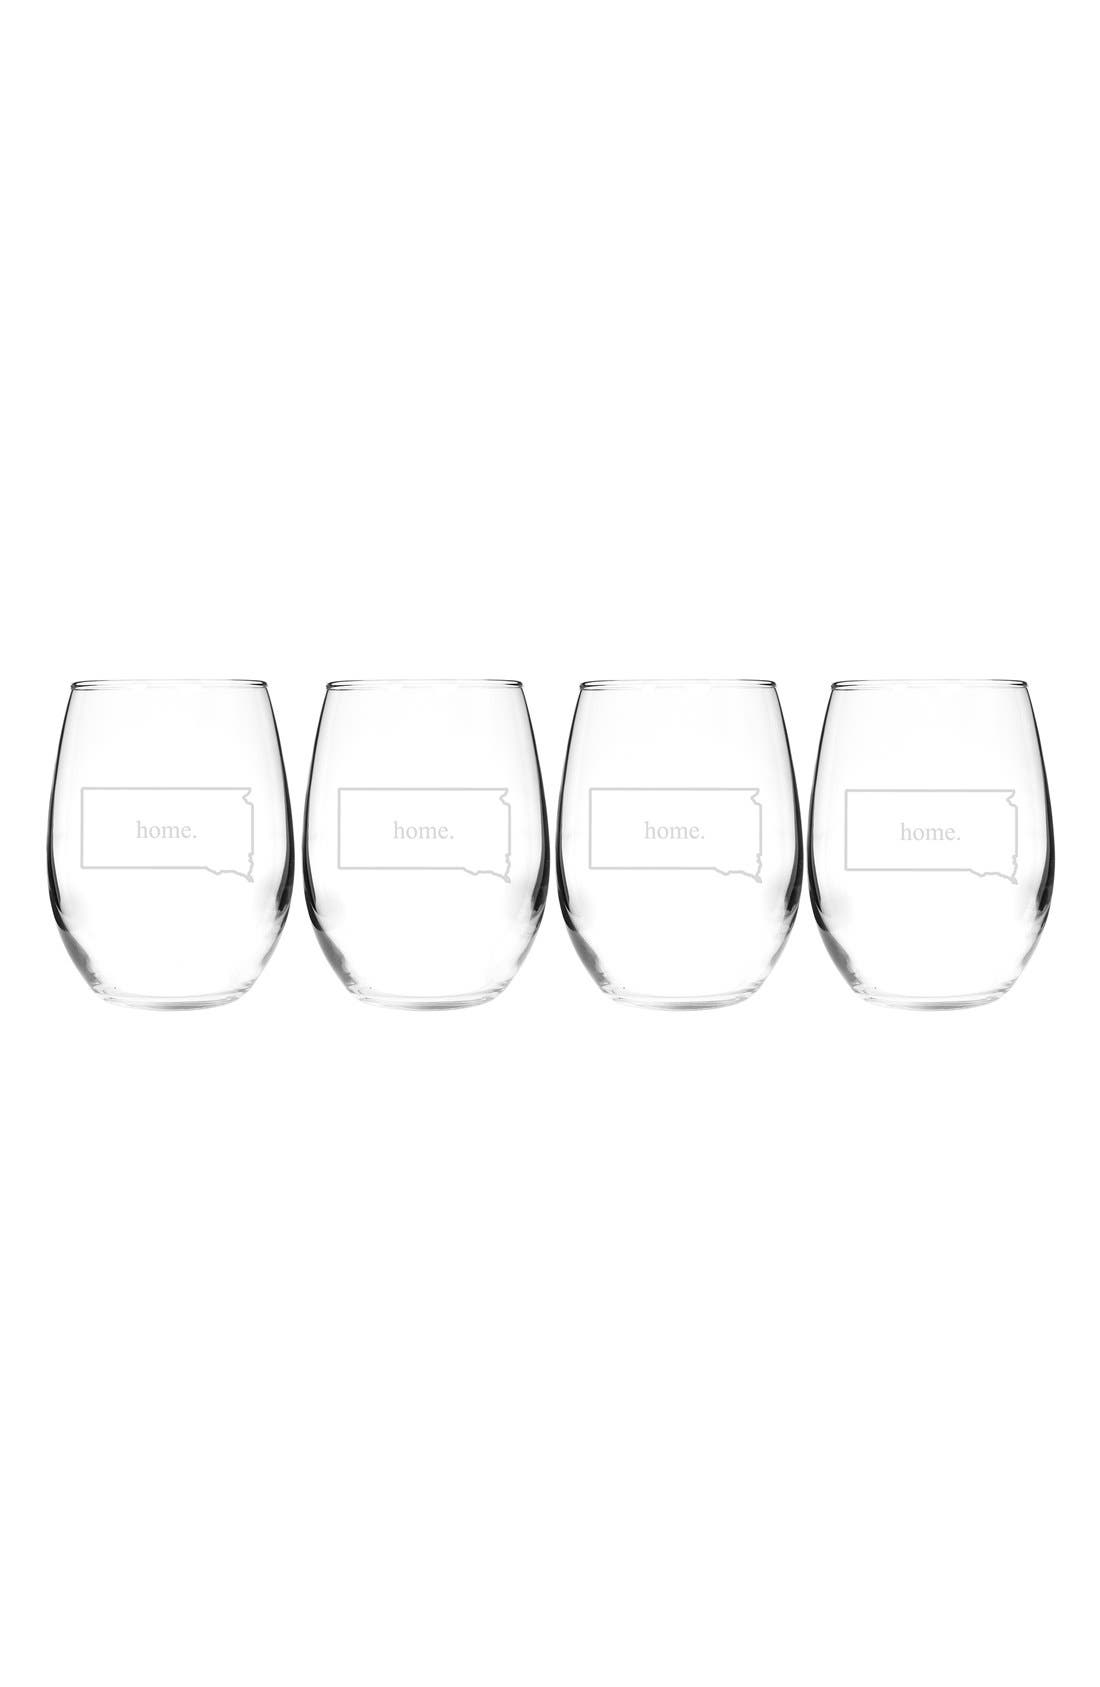 Home State Set of 4 Stemless Wine Glasses,                             Main thumbnail 42, color,